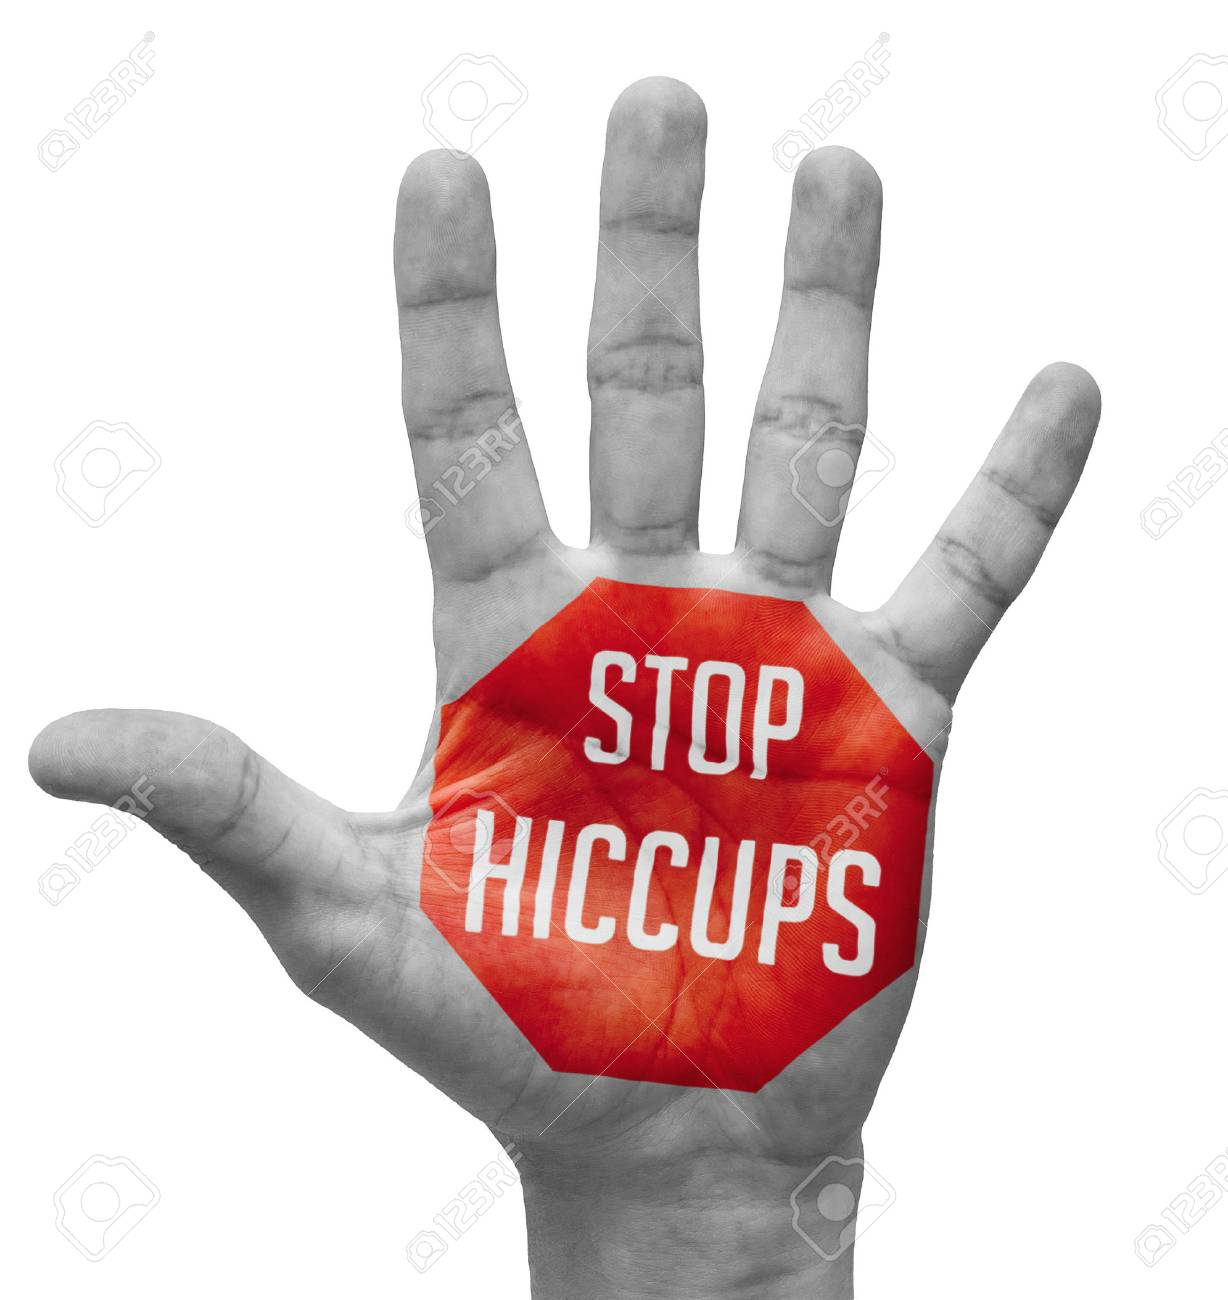 Stop Hiccups - Red Sign Painted - Open Hand Raised, Isolated on White Background. - 36558017